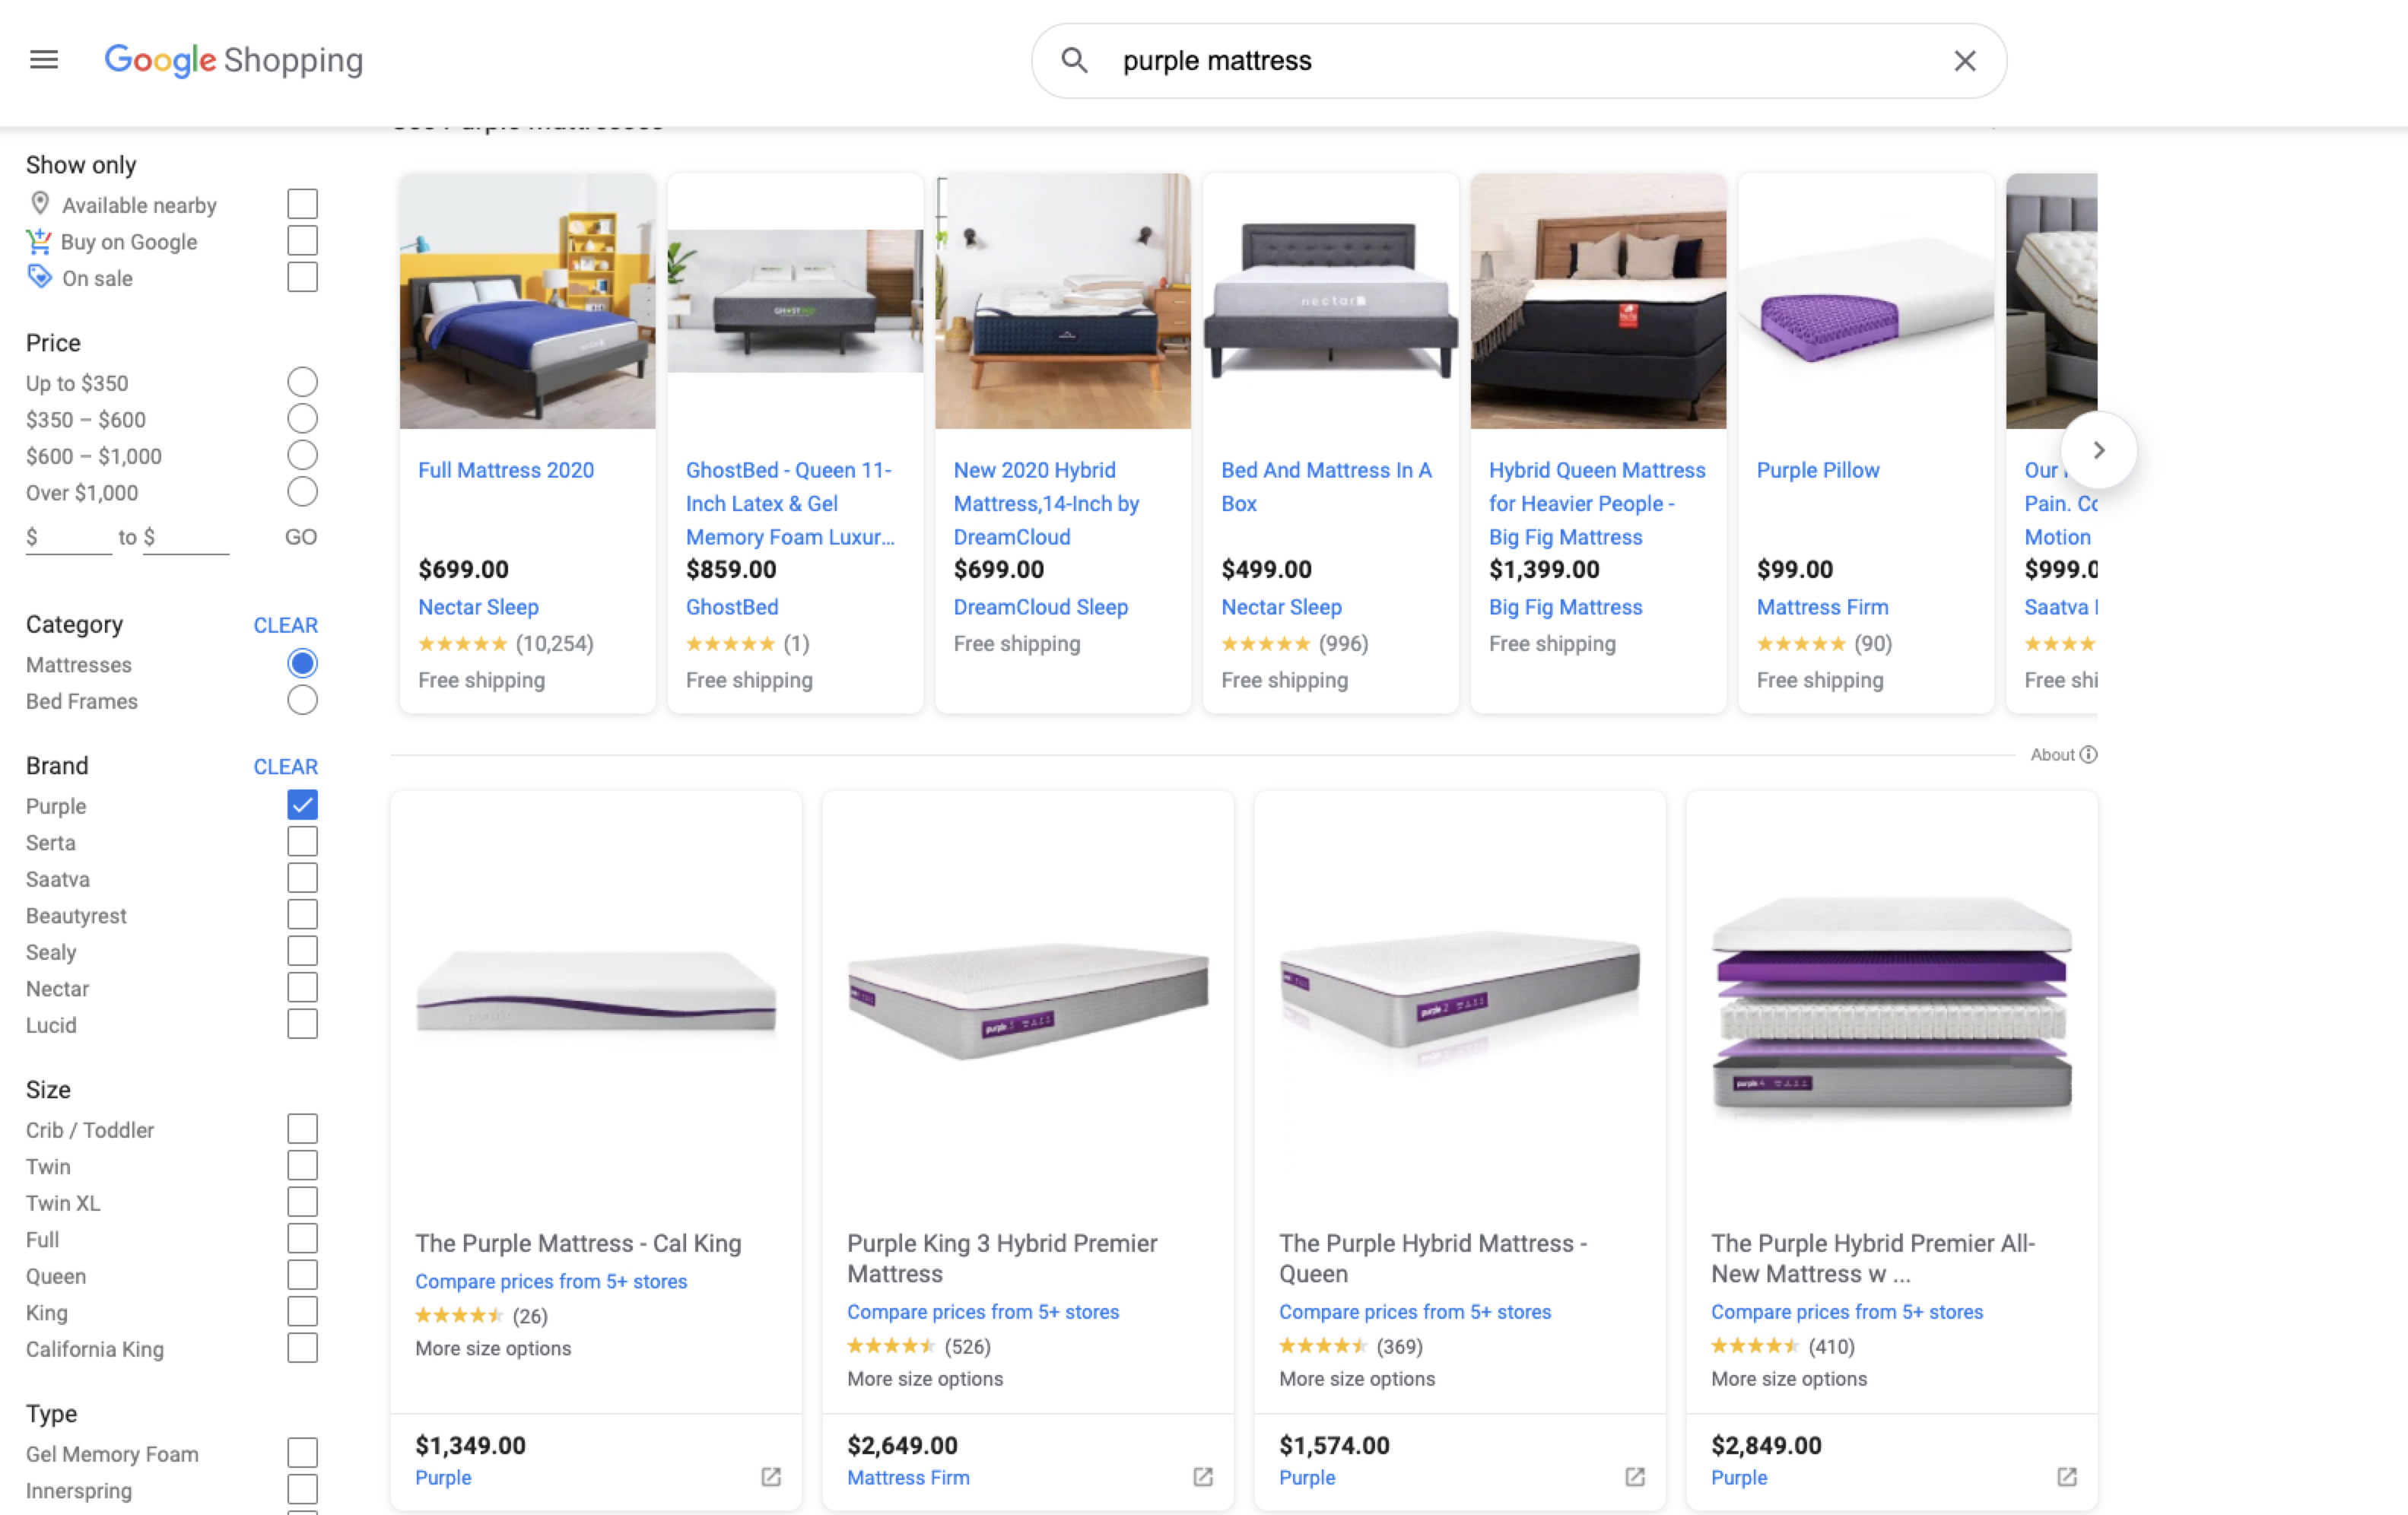 Googles comparison shopping engine, Google Shopping